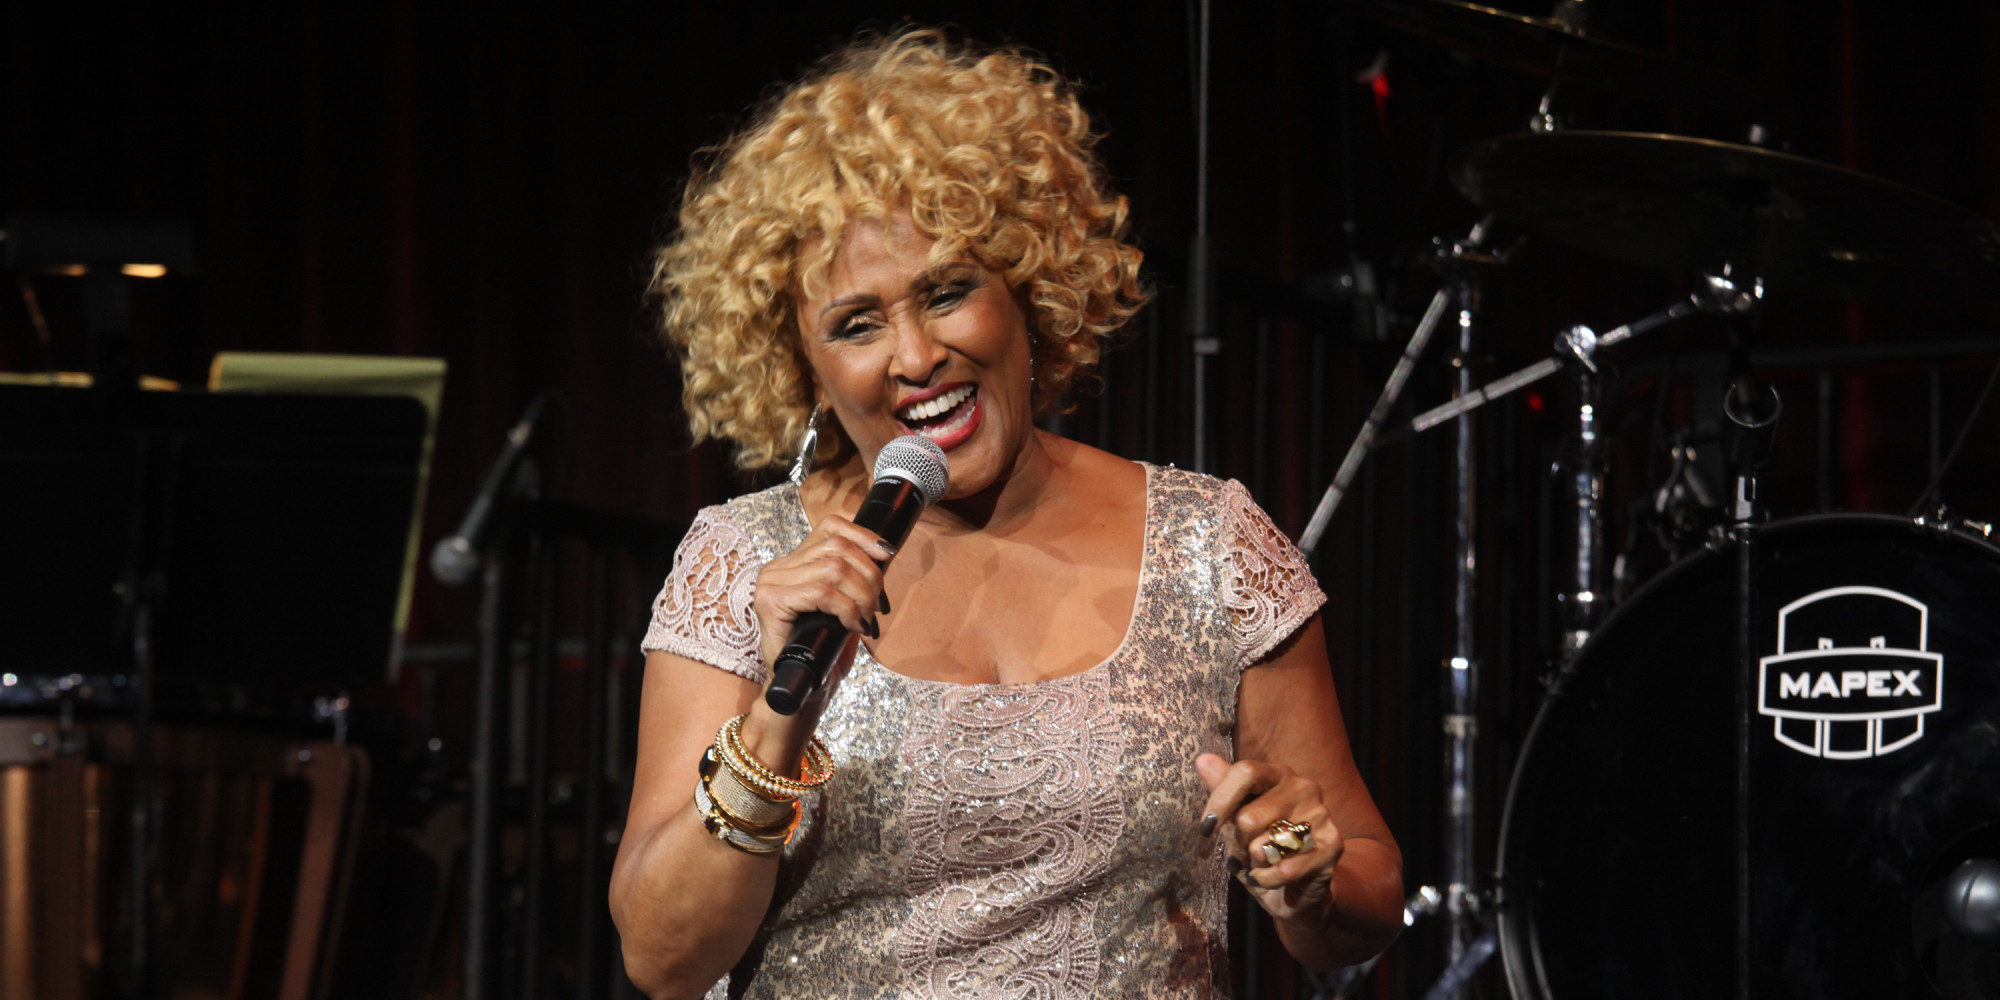 darlene love a fine fine boydarlene love all alone on christmas, darlene love скачать, darlene love christmas, darlene love christmas скачать, darlene love christmas mp3, darlene love winter wonderland, darlene love today i met the boy i'm gonna marry lyrics, darlene love white christmas, darlene love a fine fine boy, darlene love discography, darlene love today i met the boy, darlene love alley oop, darlene love all alone on christmas lyrics, darlene love home alone, darlene love lean on me, darlene love слушать, darlene love christmas перевод, darlene love baby come home, darlene love lyrics, darlene love paint another picture